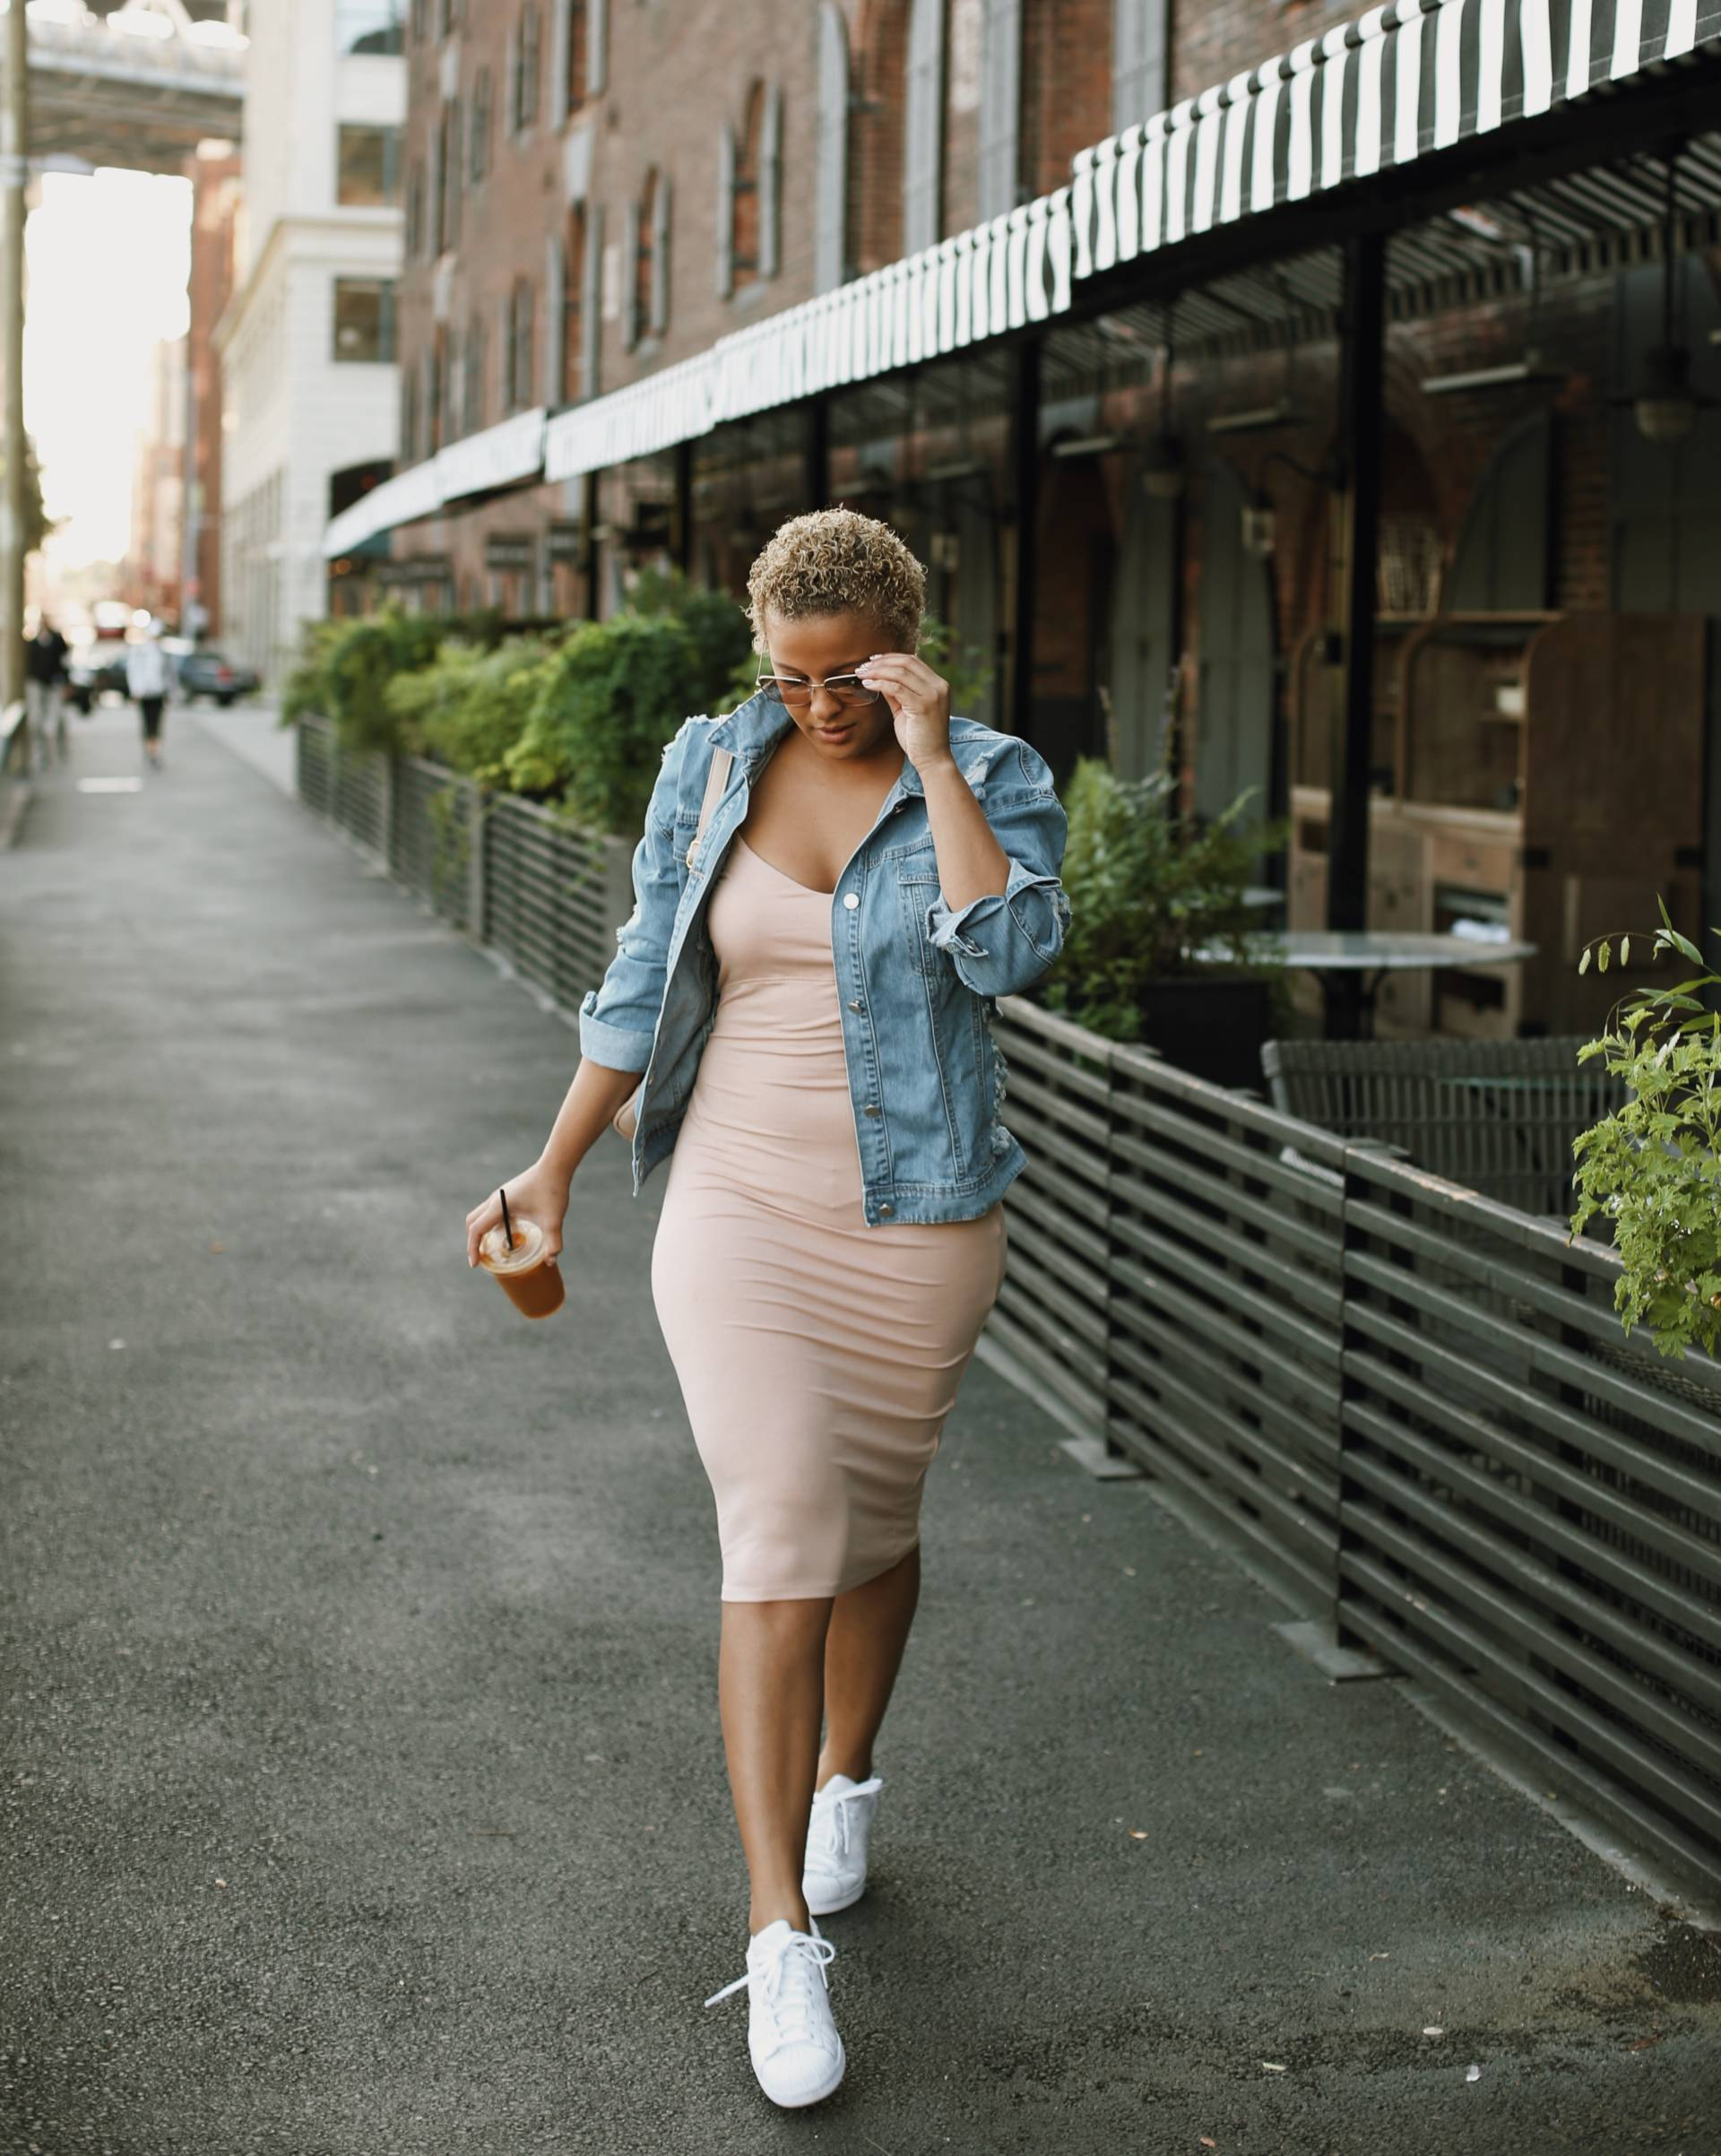 ffdbd966432 ... pair a dress with adidas to take things up a notch. Read on for a few  tips for achieving that cool girl look and shop a few of my fave combos  below!